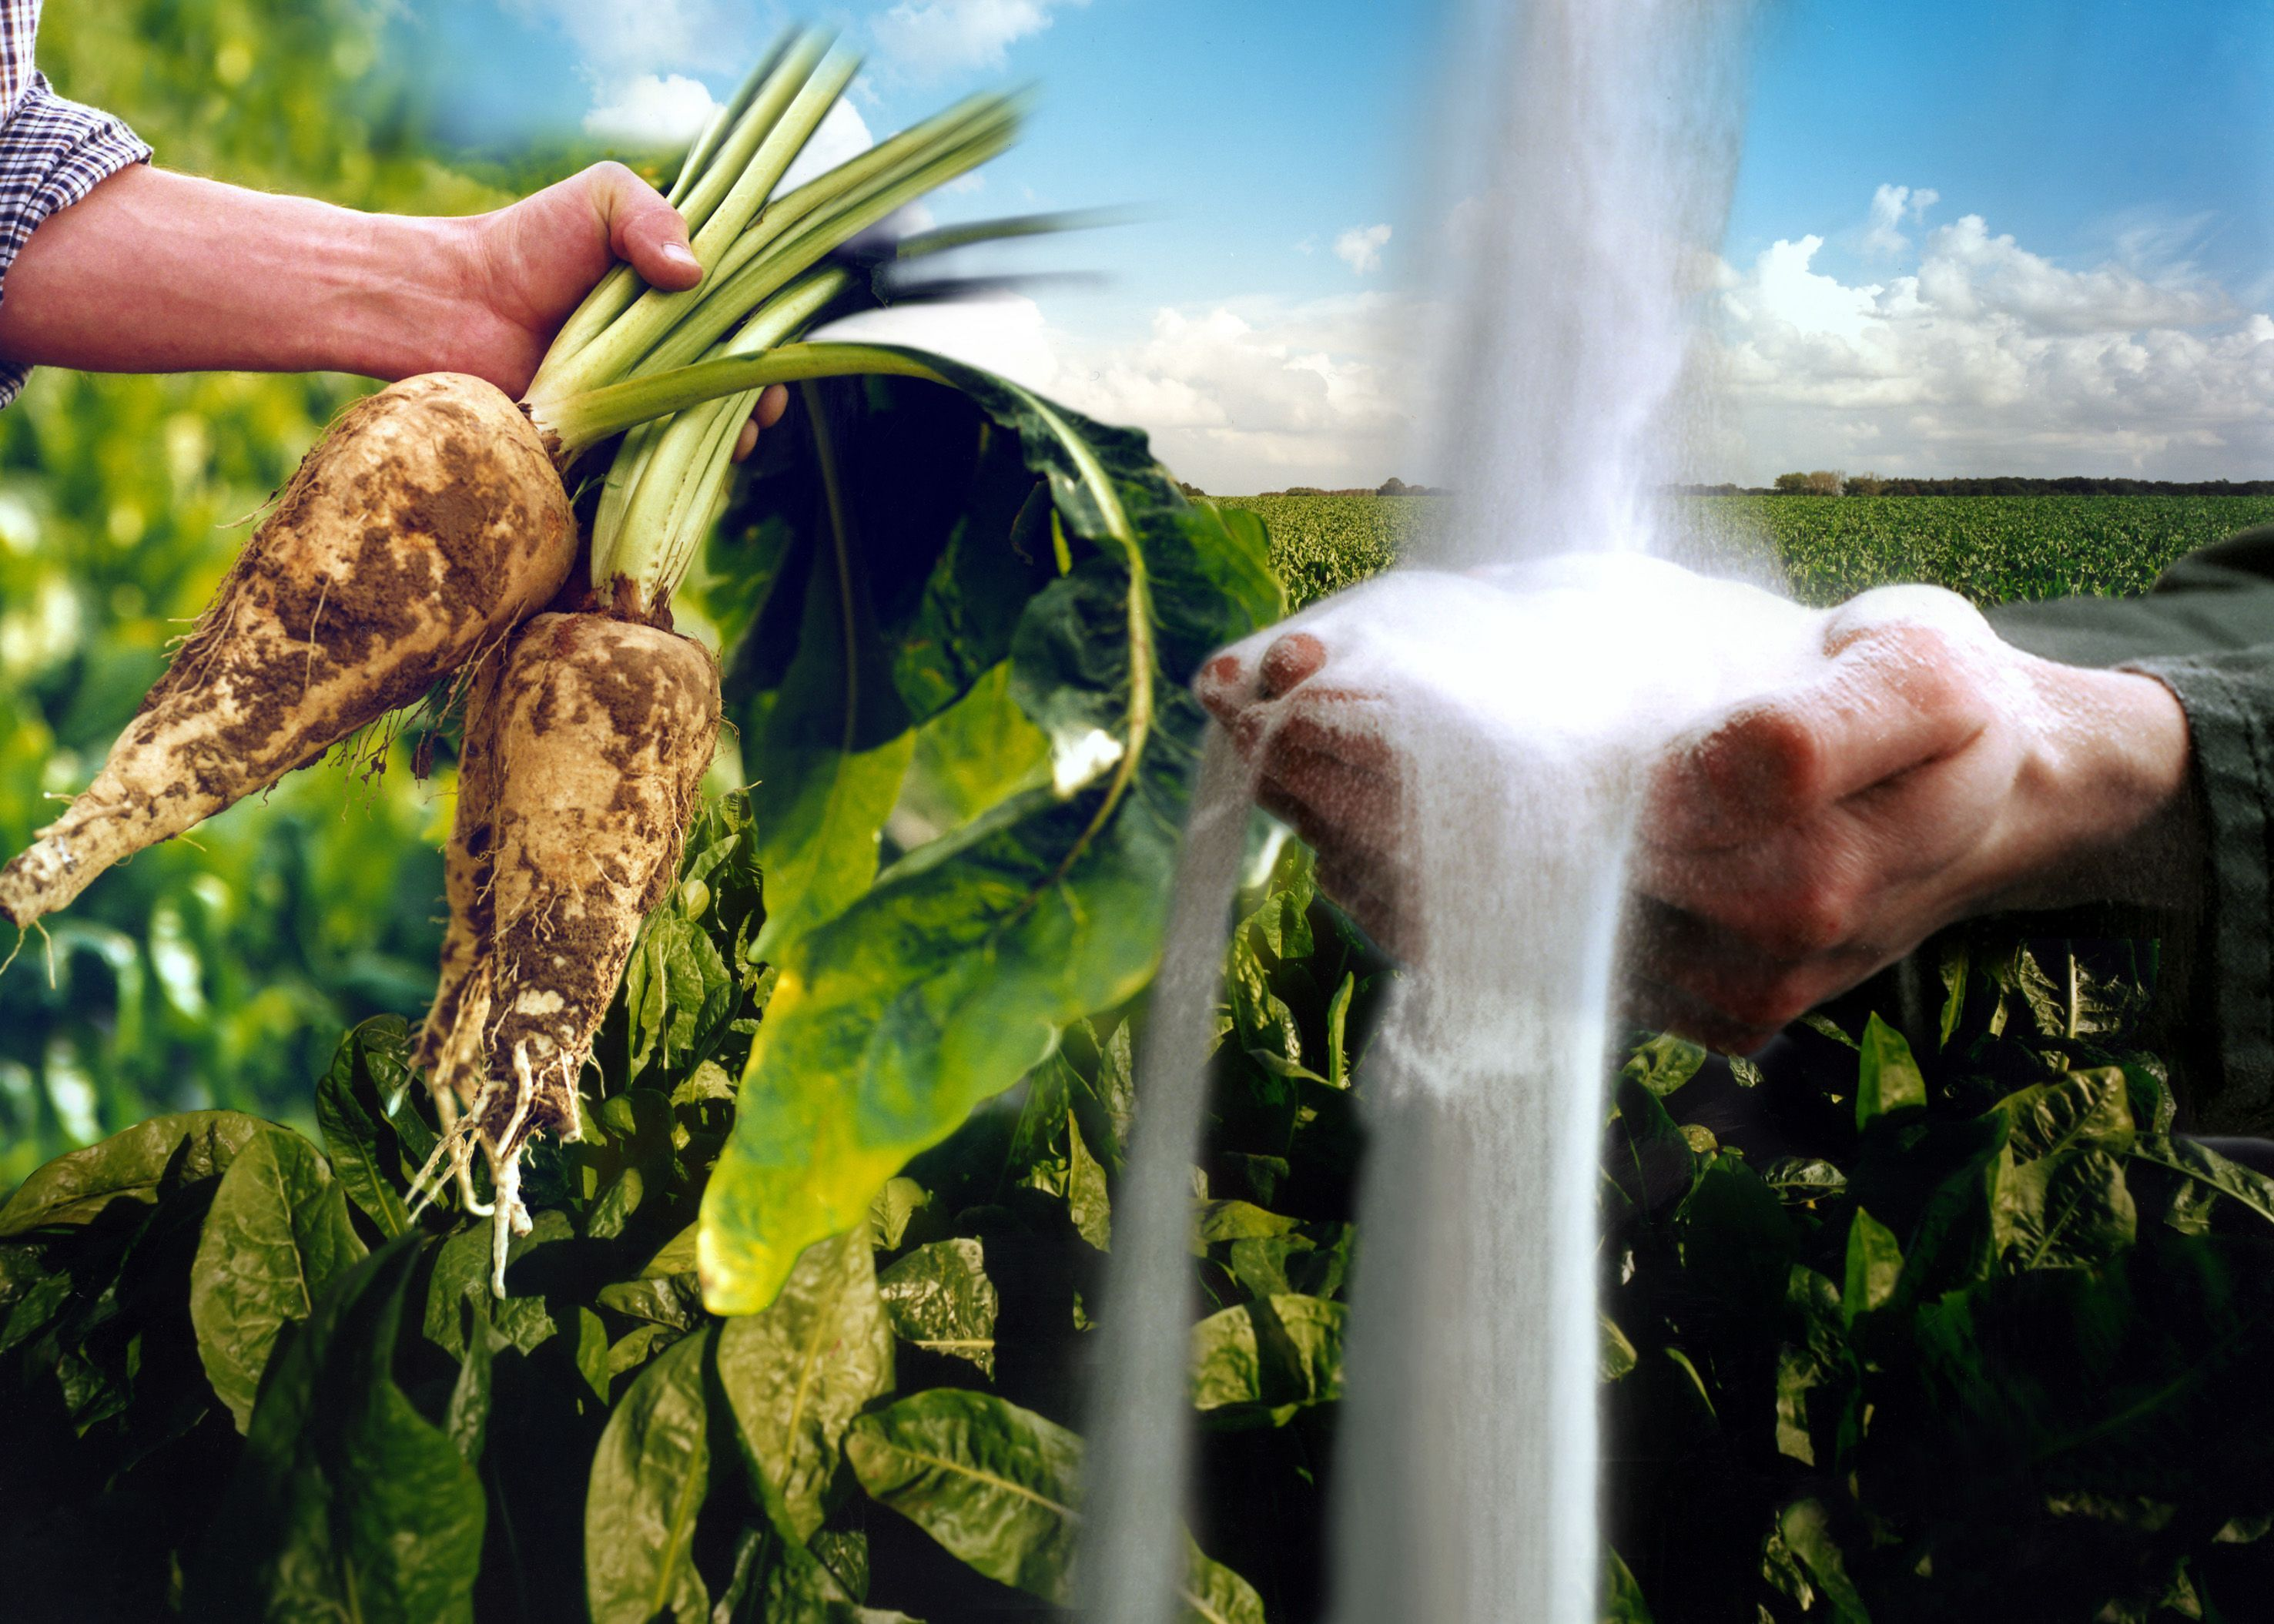 More than 100 years of experience in developing and producing functional nutrients